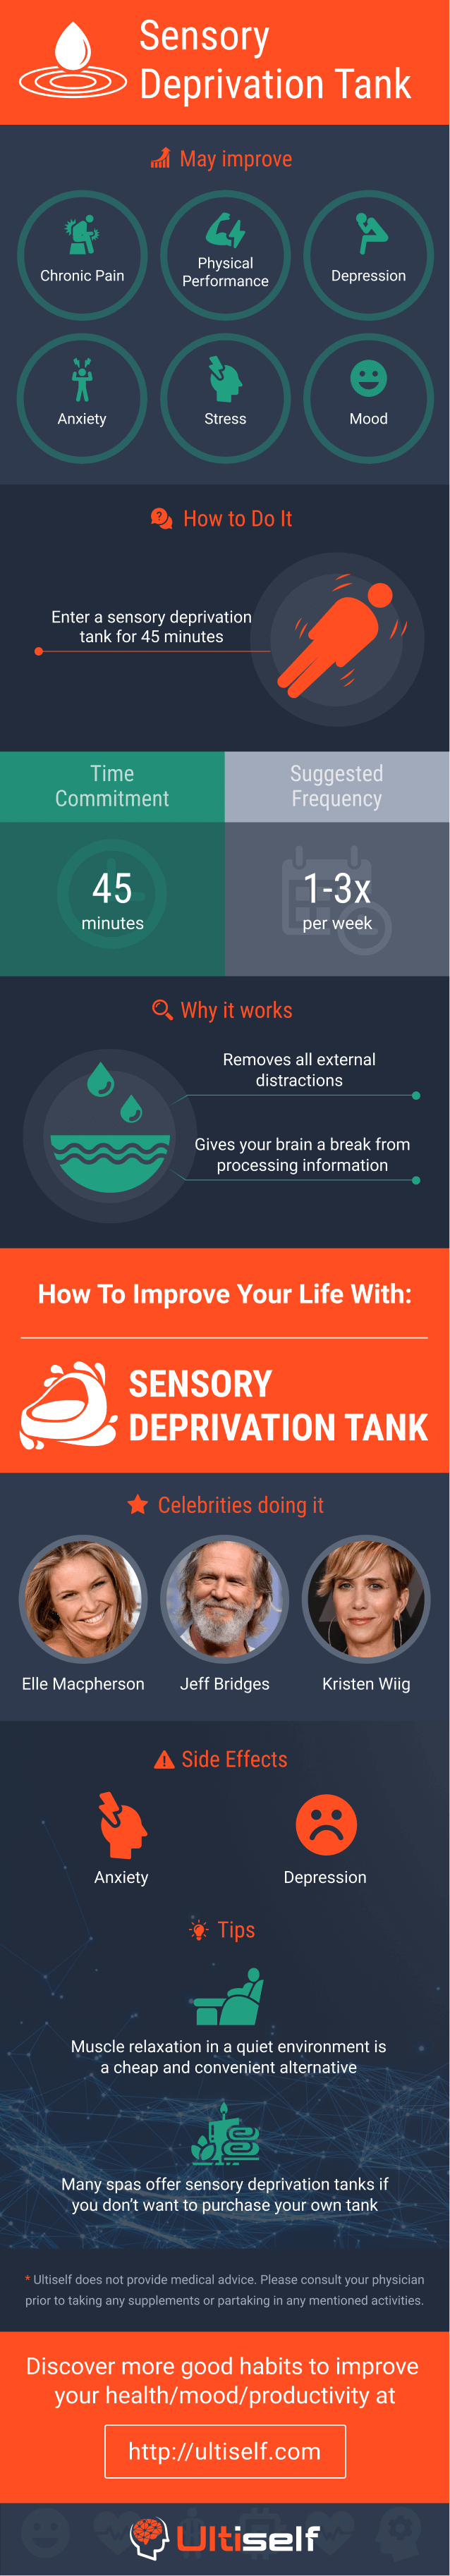 Sensory Deprivation Tank infographic